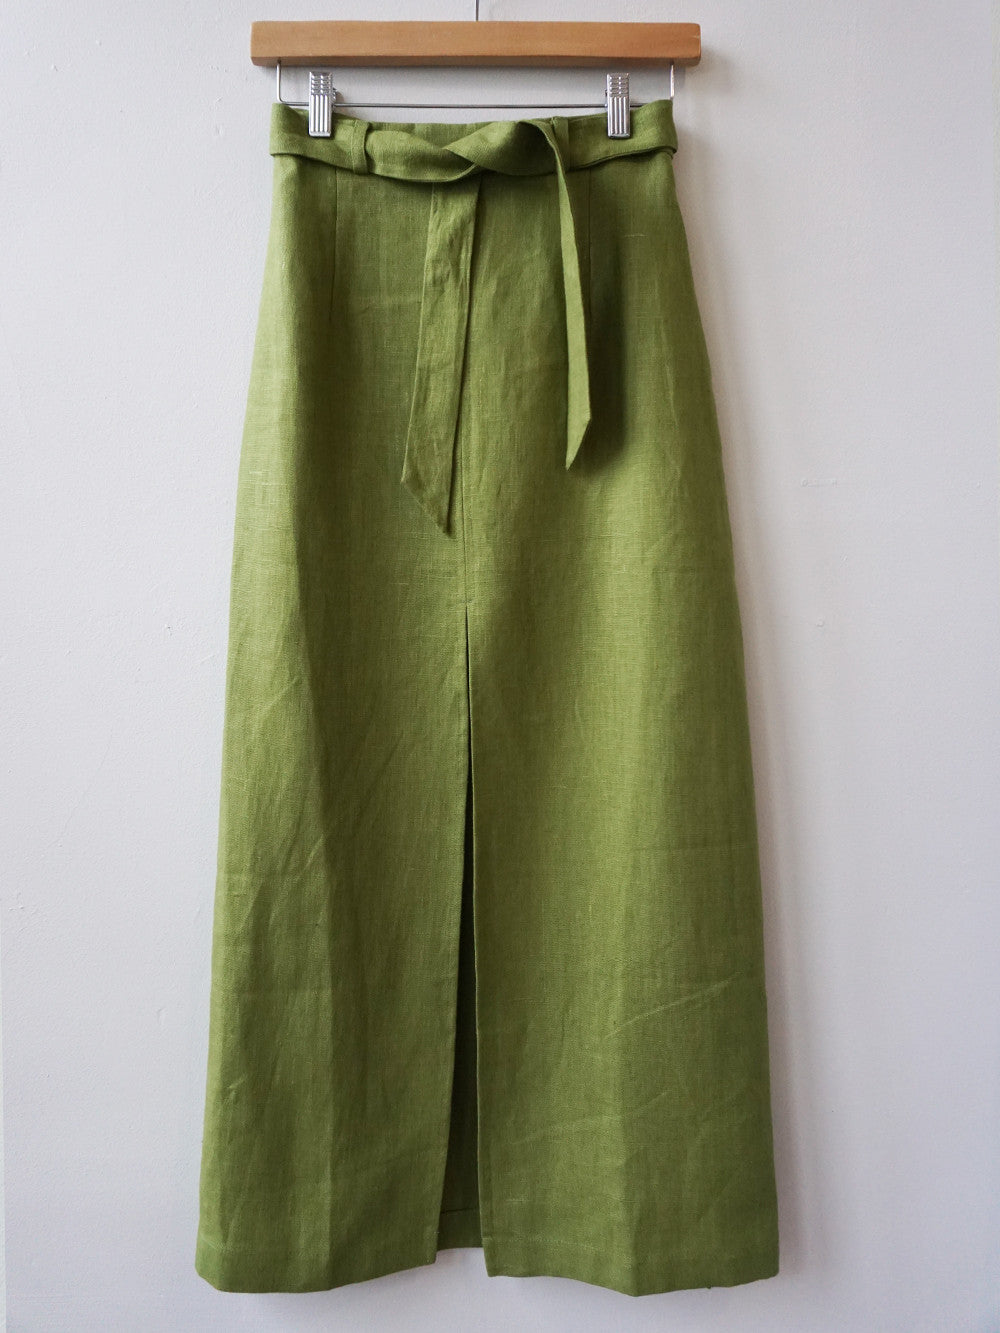 Paloma-Wool-Jupo-II-Skirt-Green